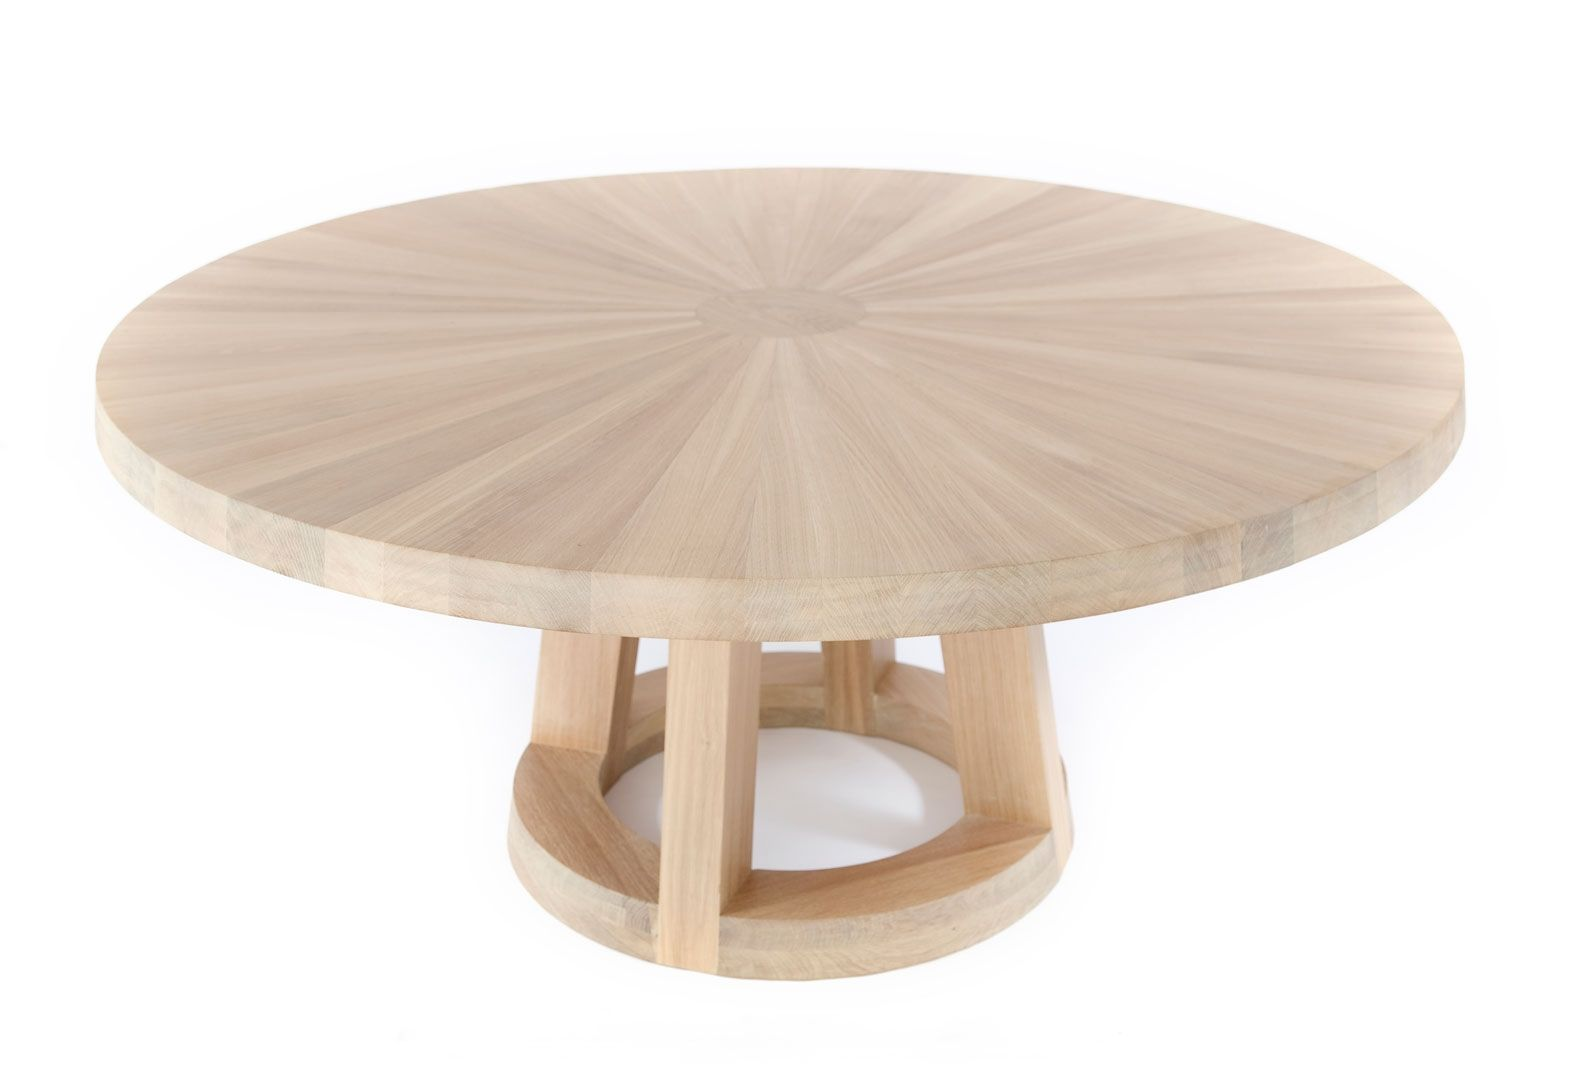 Grote Ronde Design Tafels.Solid Ronde Design Tafel L Remy Meijers L Odesi Your Dutch Design